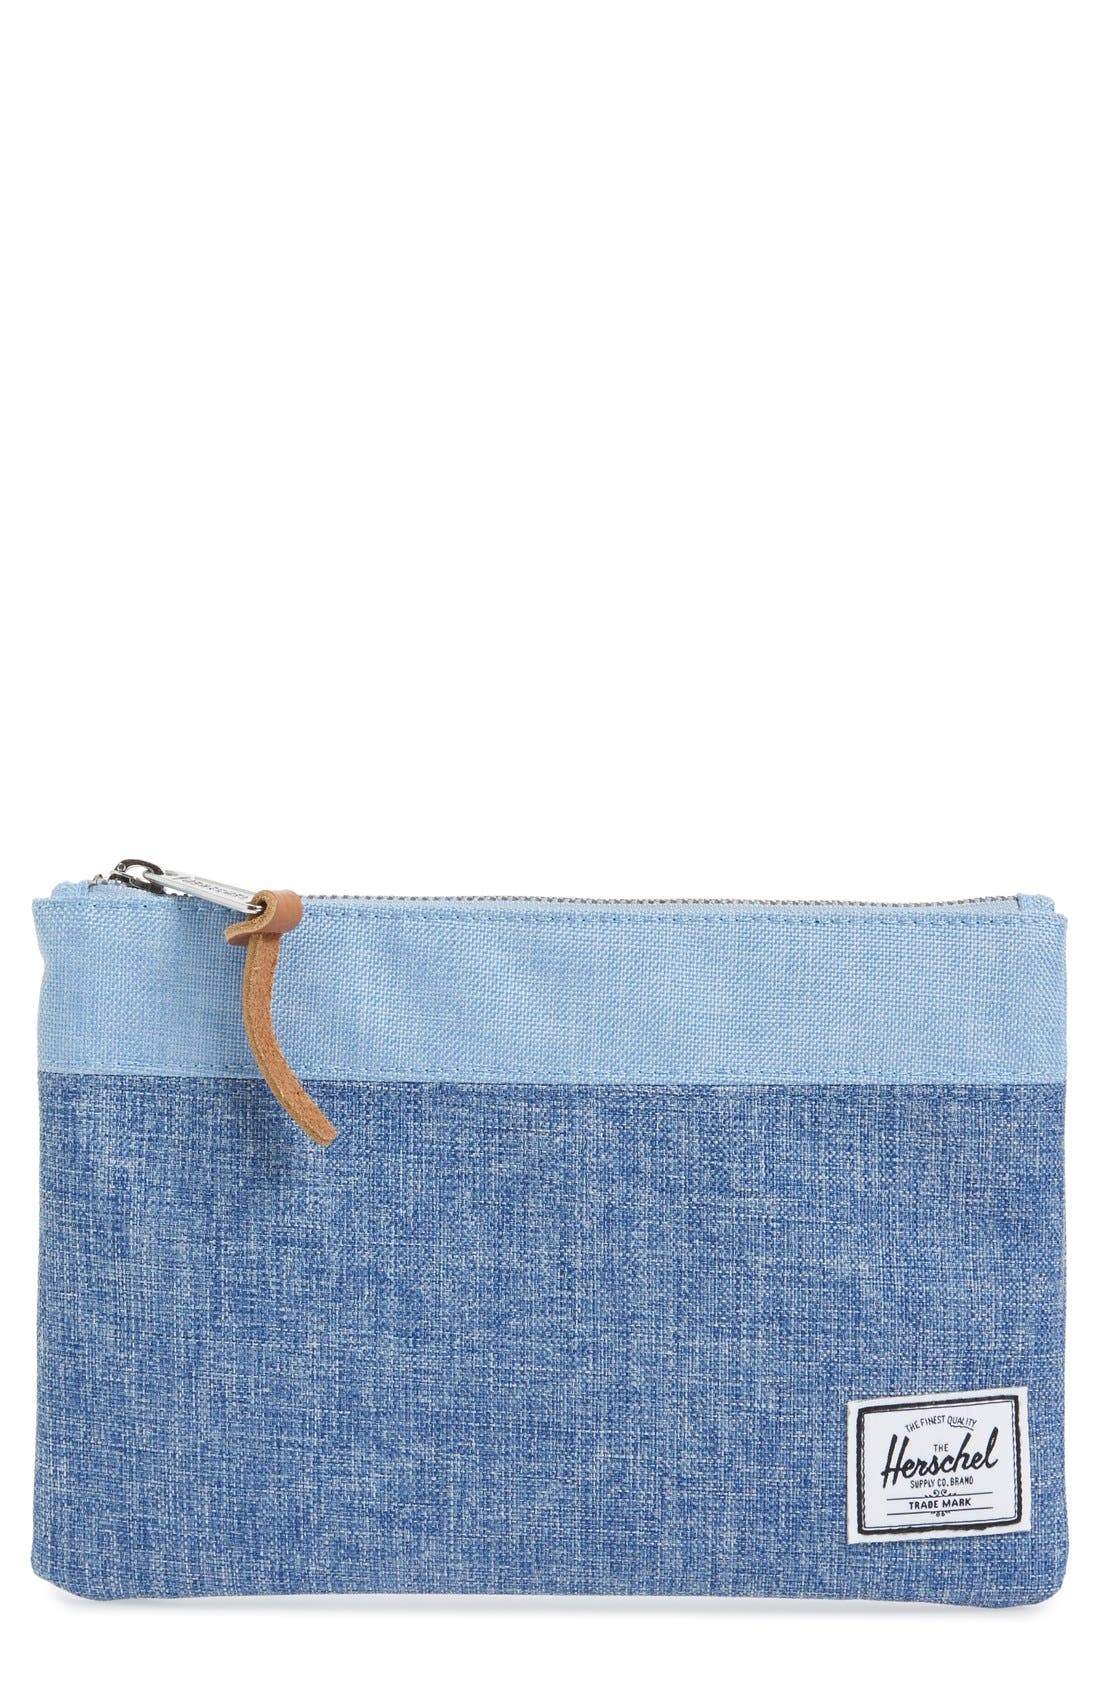 Main Image - Herschel Supply Co. 'Field' Pouch